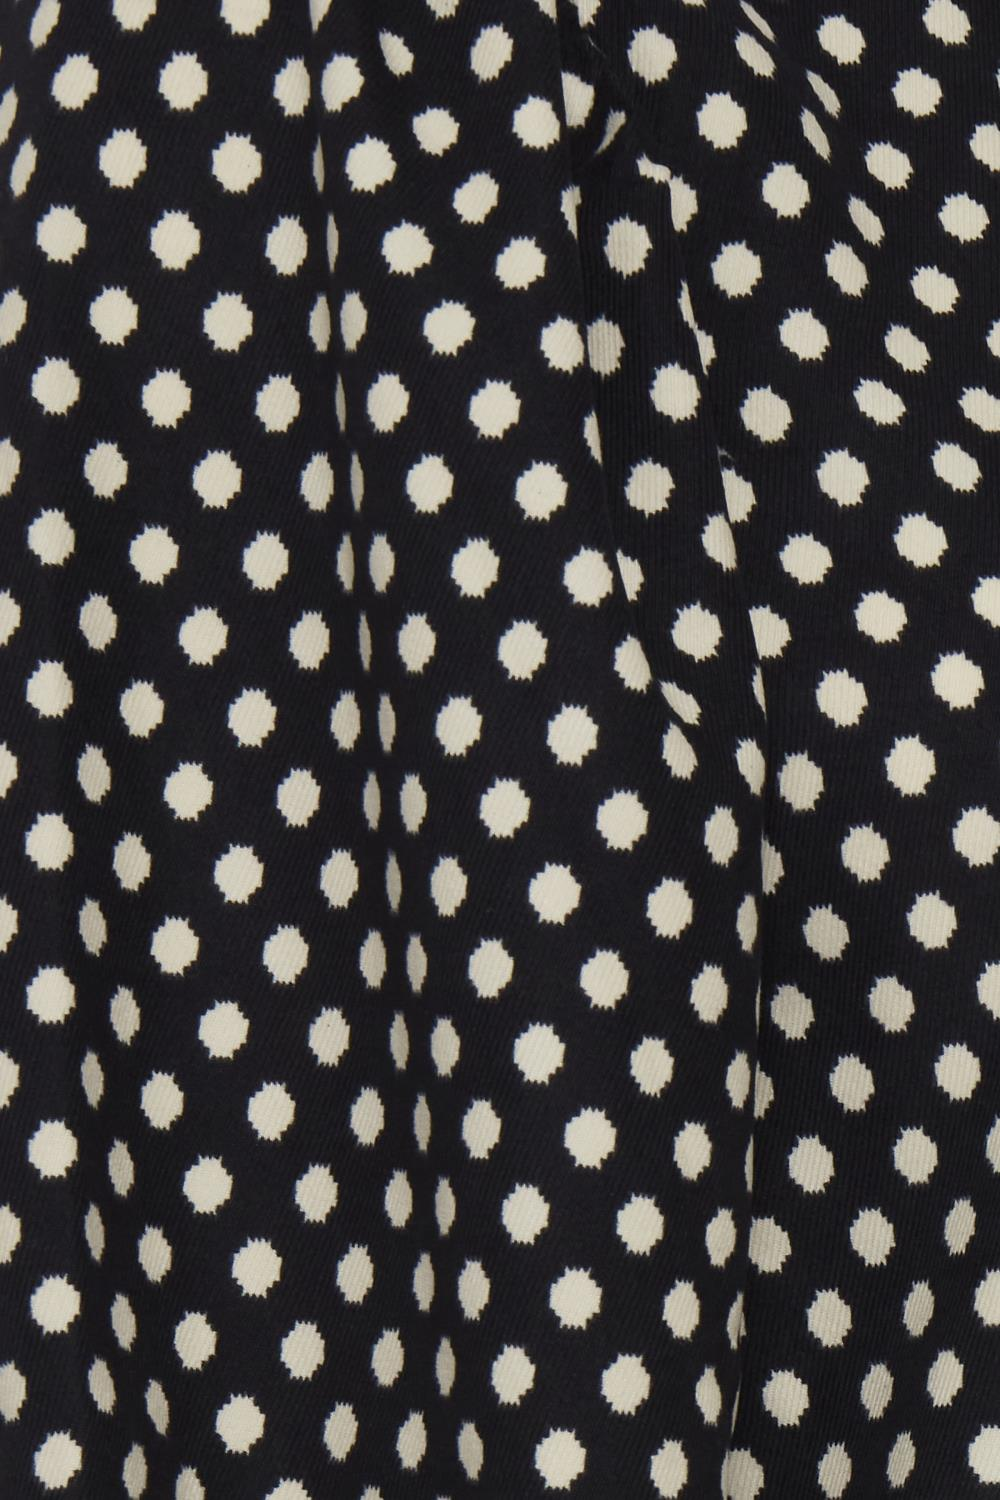 gallery-4264-for-50206234-black dot printed